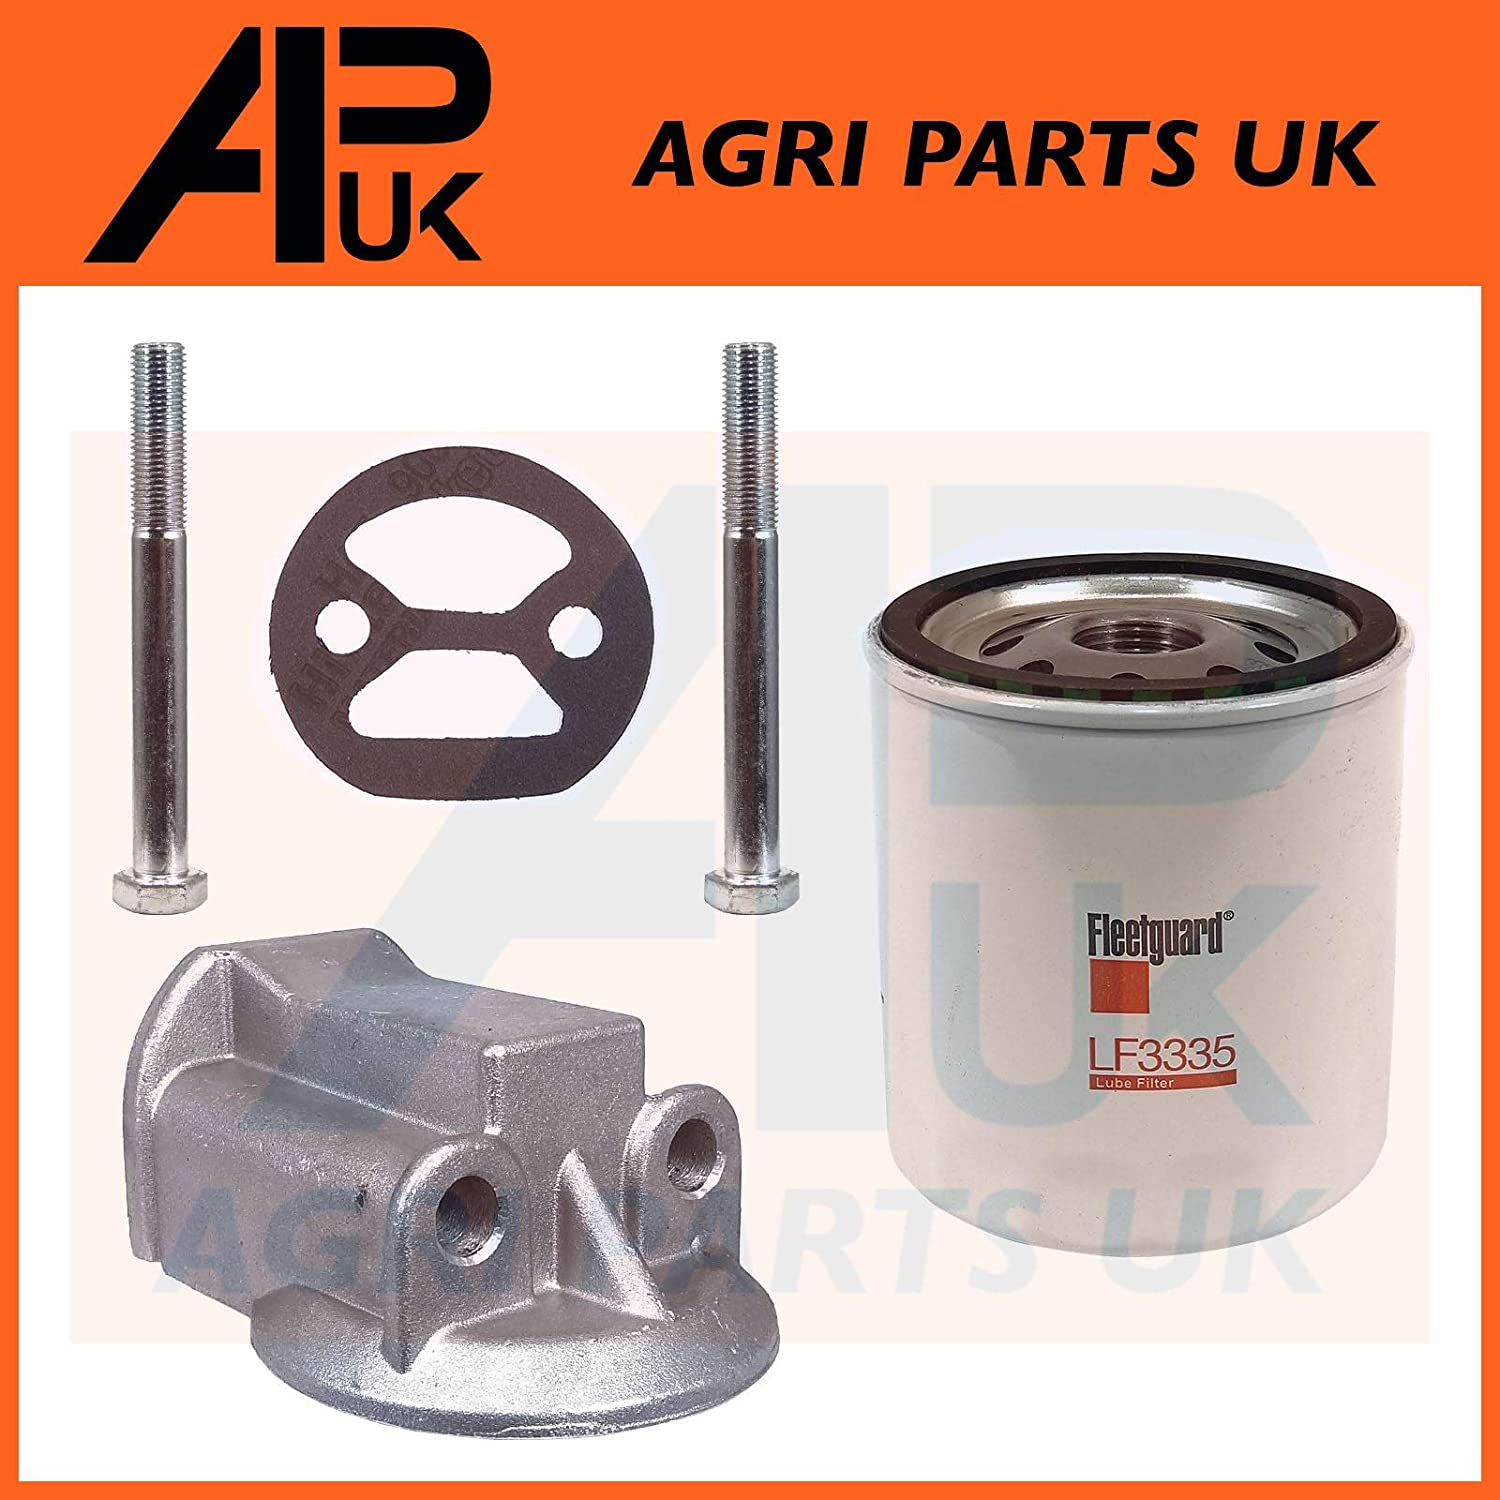 APUK BMC 1.5 1500 Marine Boat Engine Oil Filter Conversion Kit Compatible with Thornycroft Westerbeke